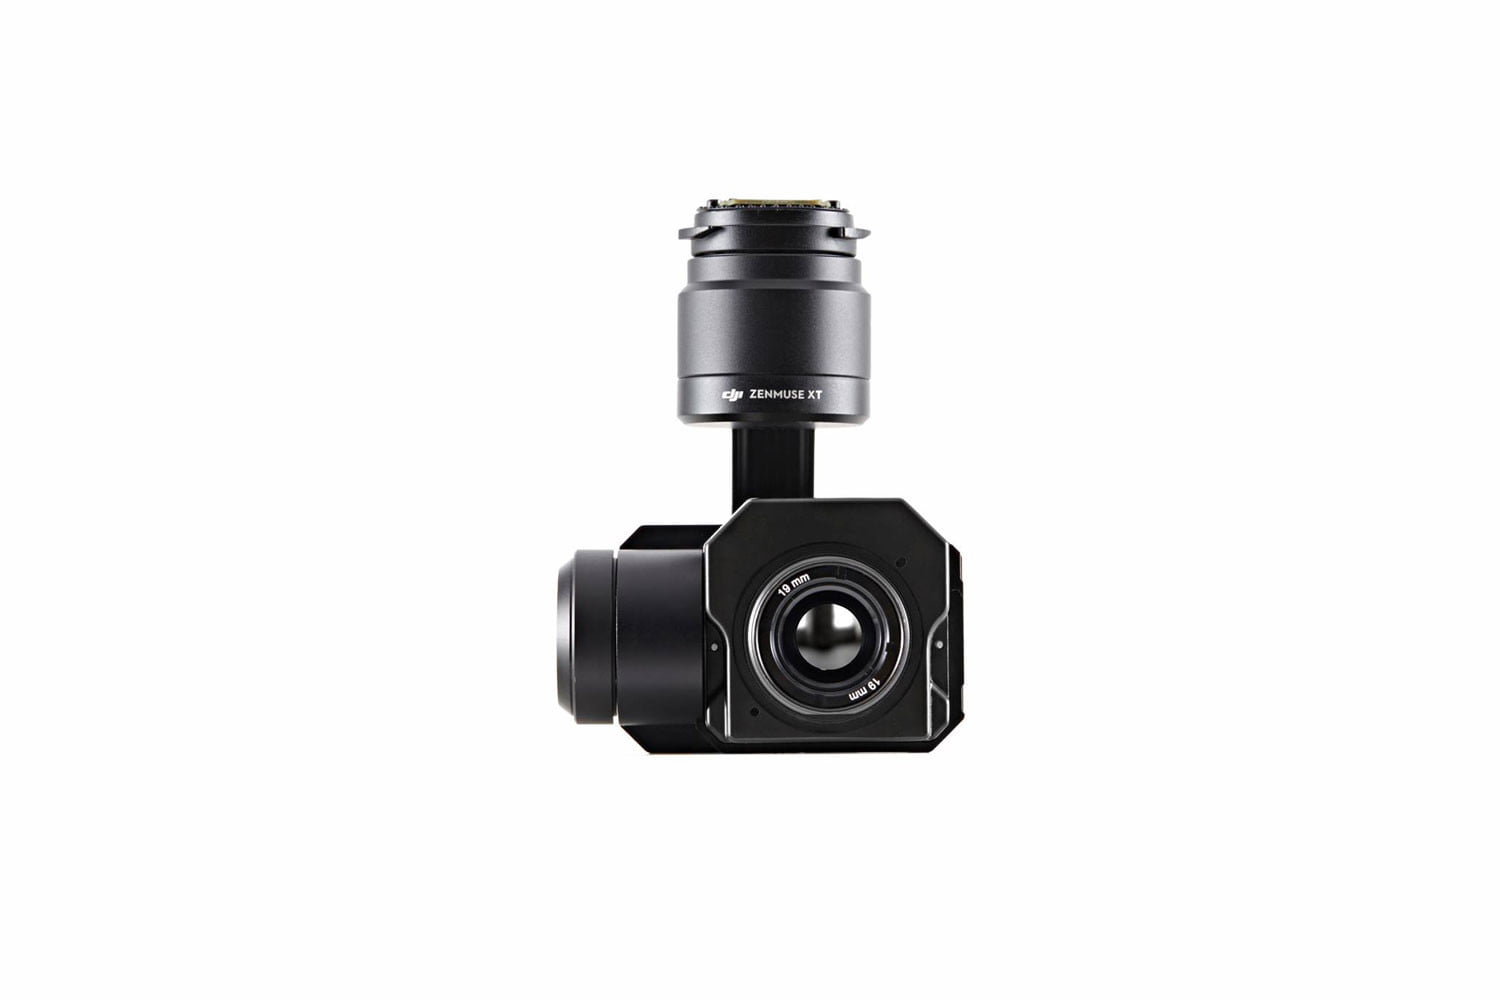 drone giant dji targets industry with specialist thermal imaging camera zenmuse xt flir 6